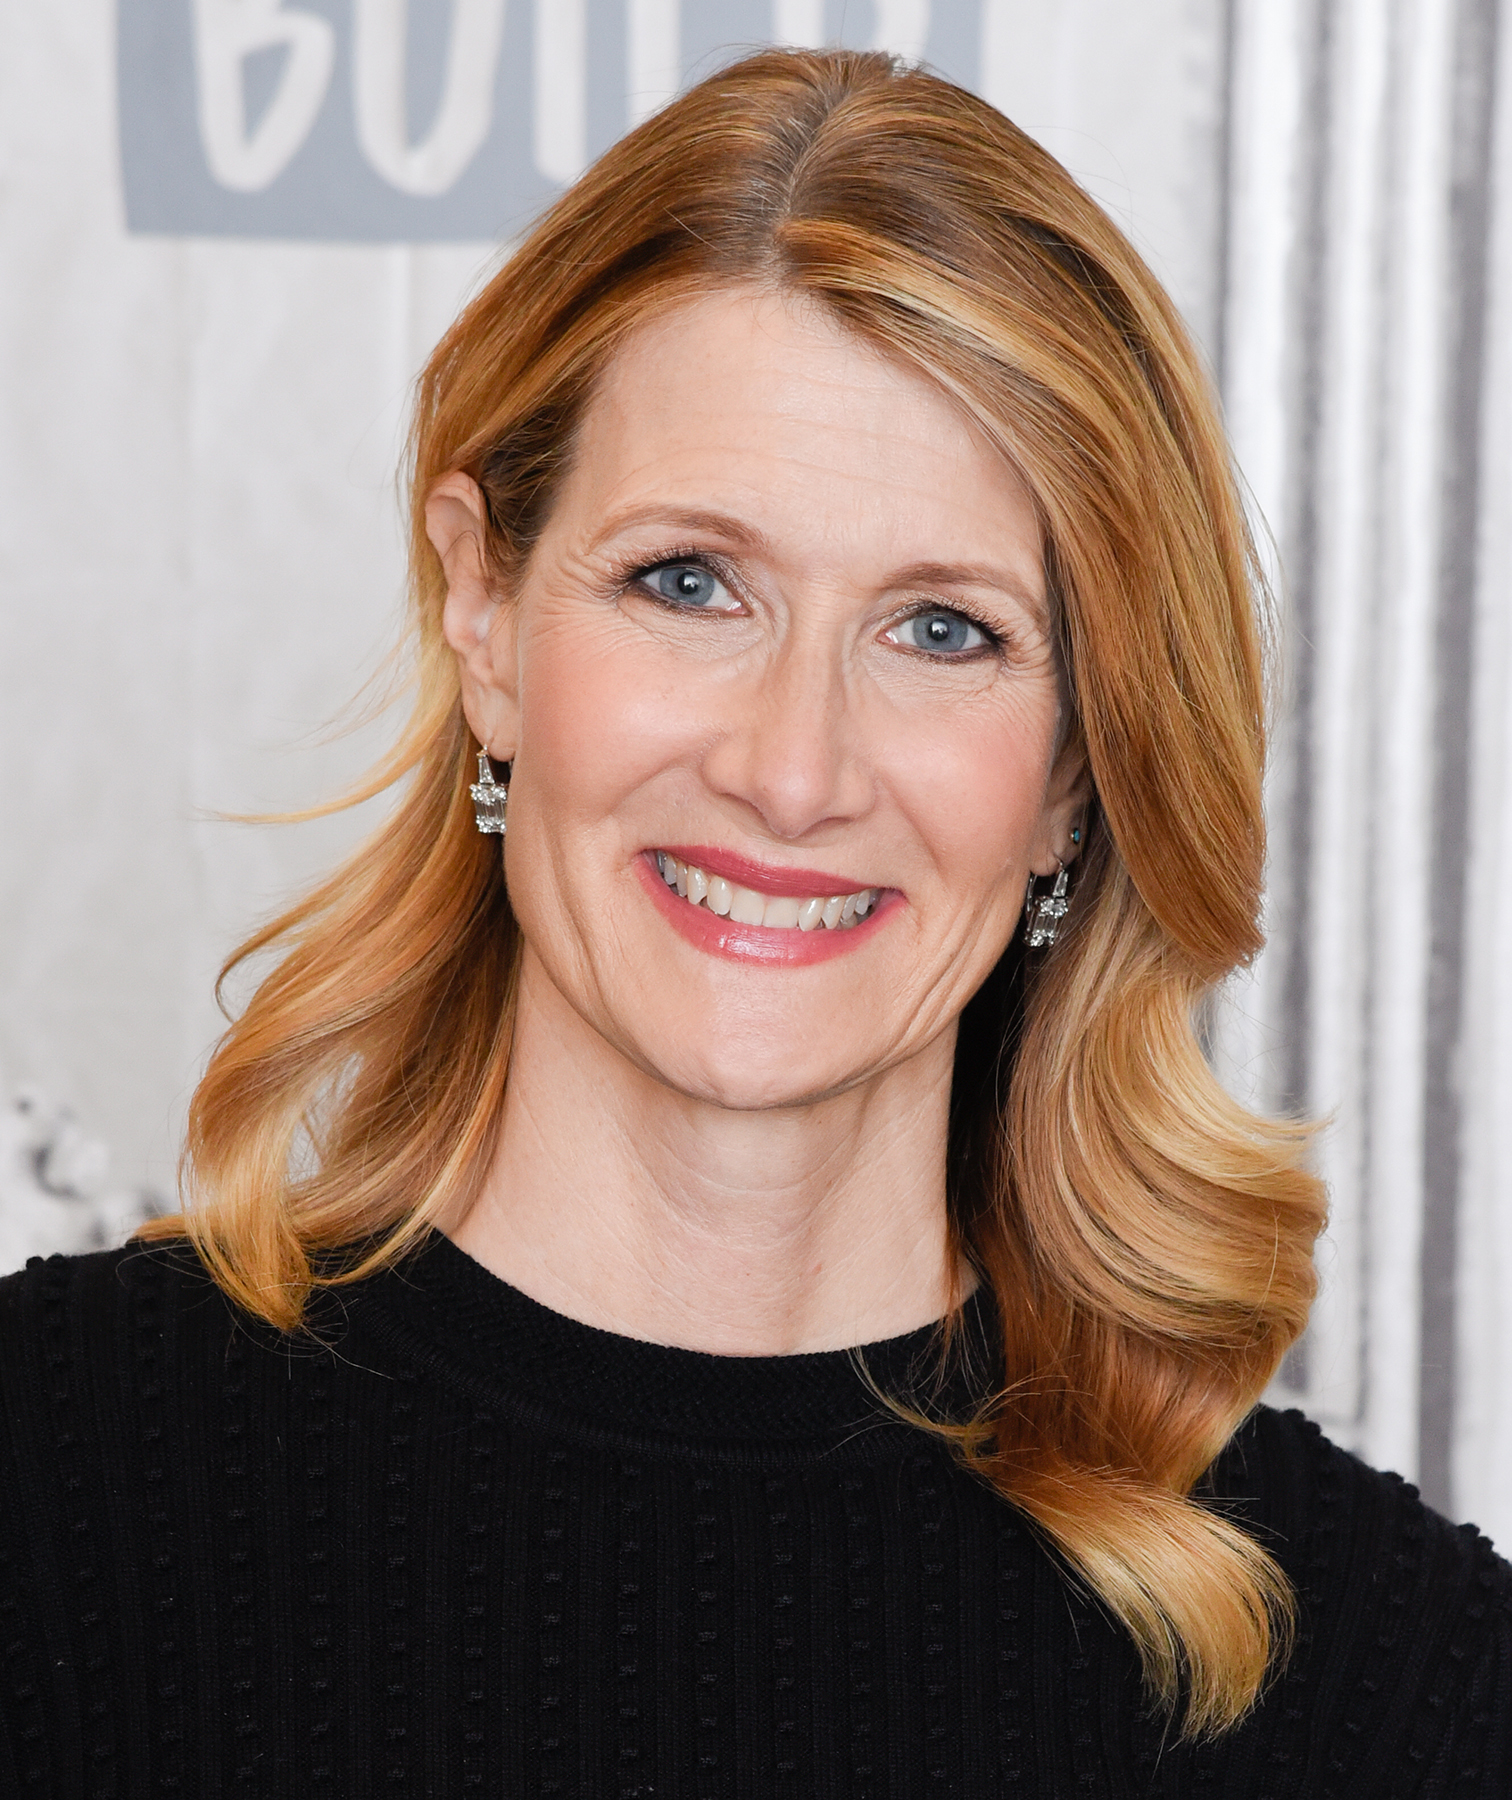 Laura Dern Is Giving Us All the Mom Feels